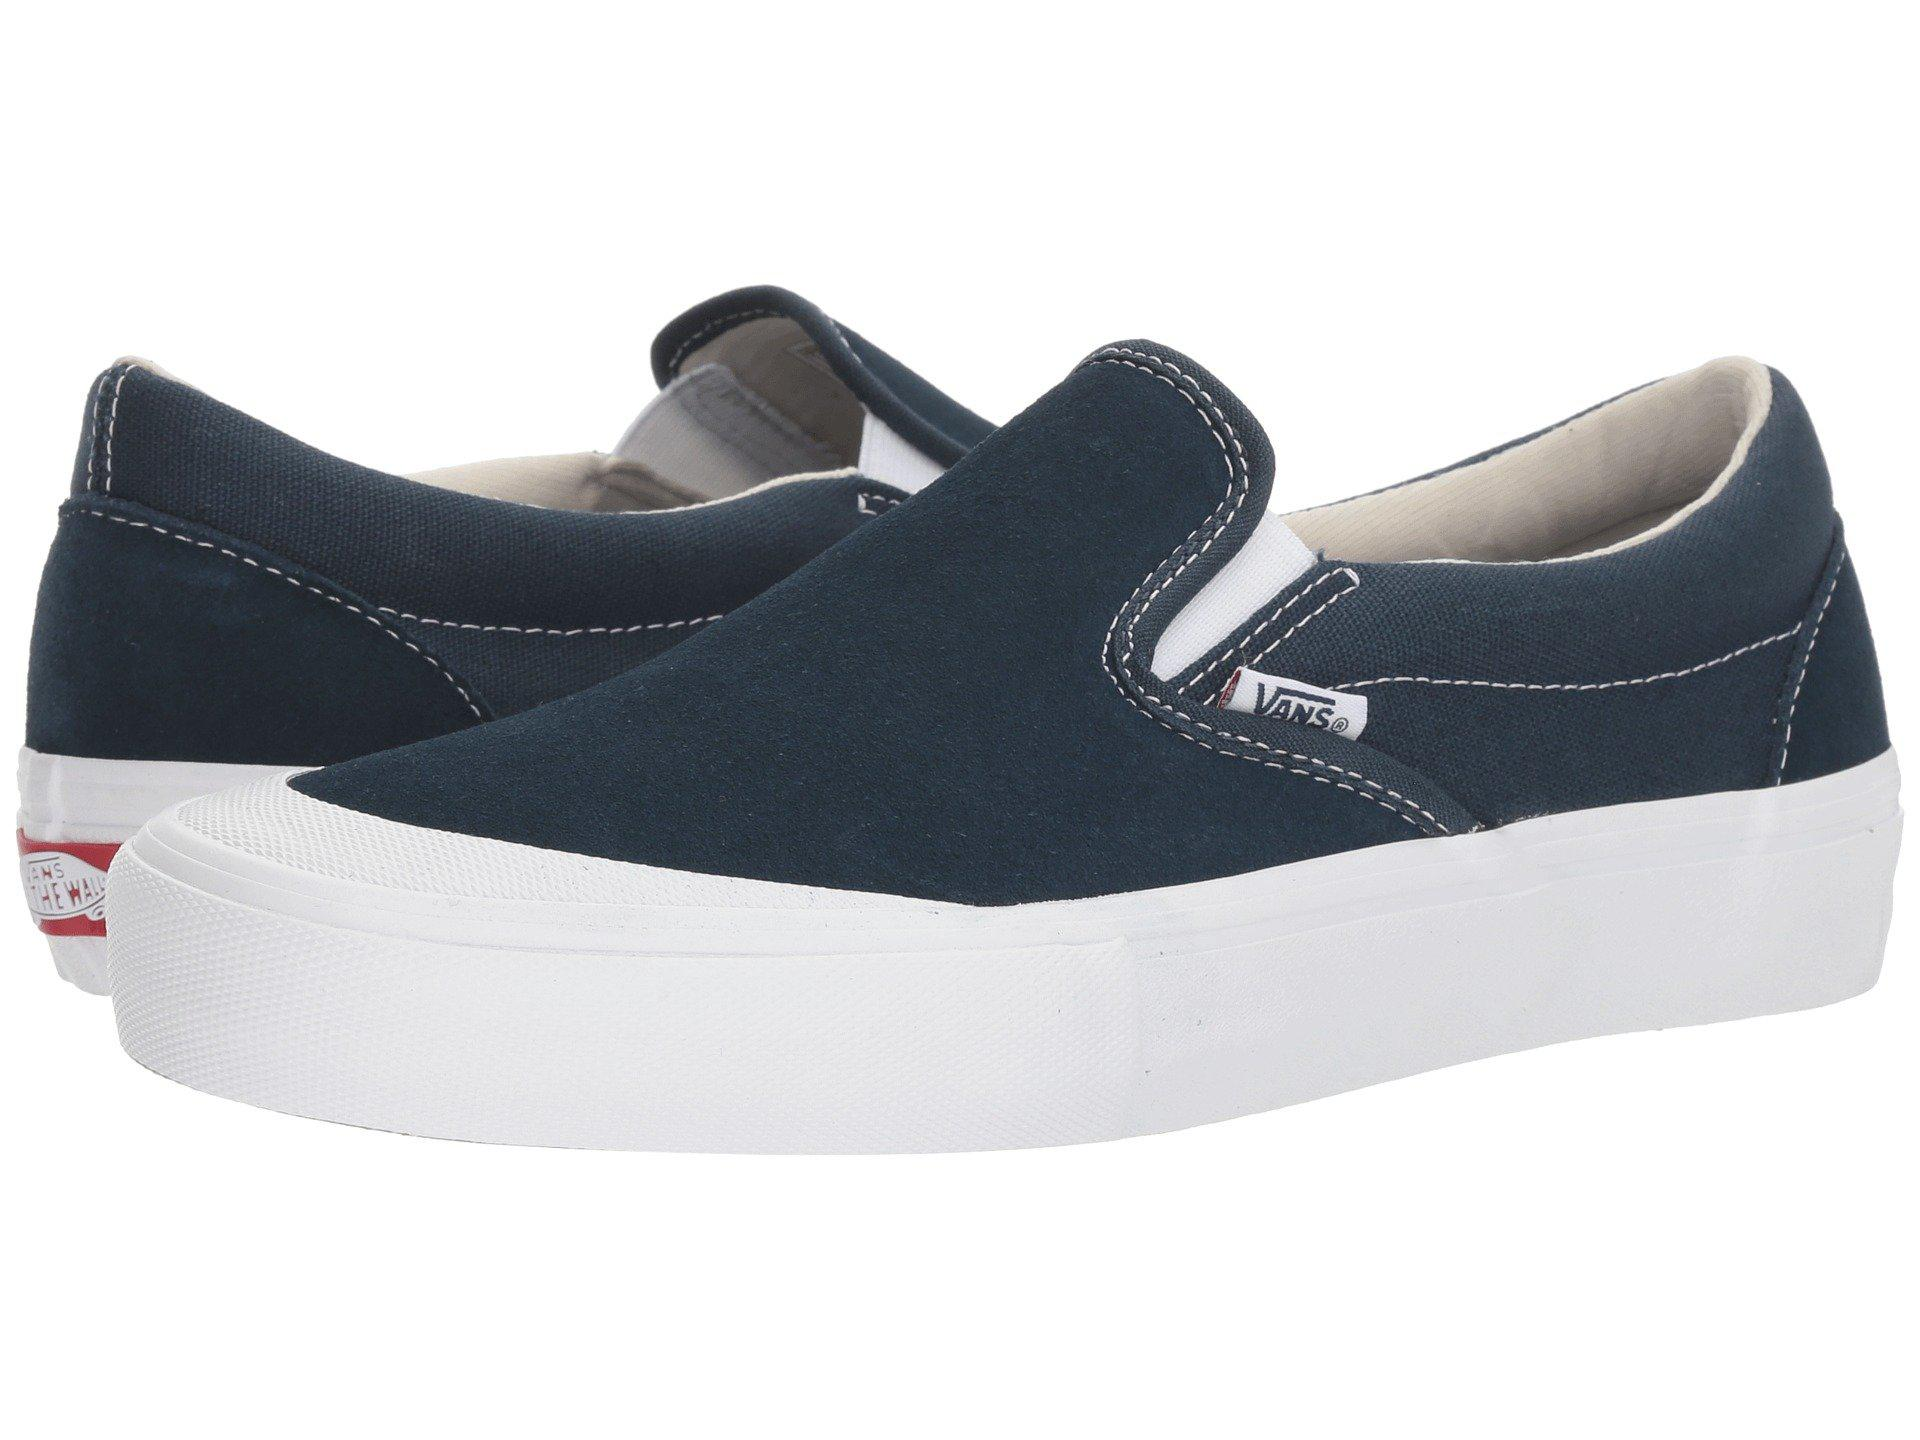 c307905ca87 Lyst - Vans Slip-on Pro ((independent) Black white) Men s Skate ...